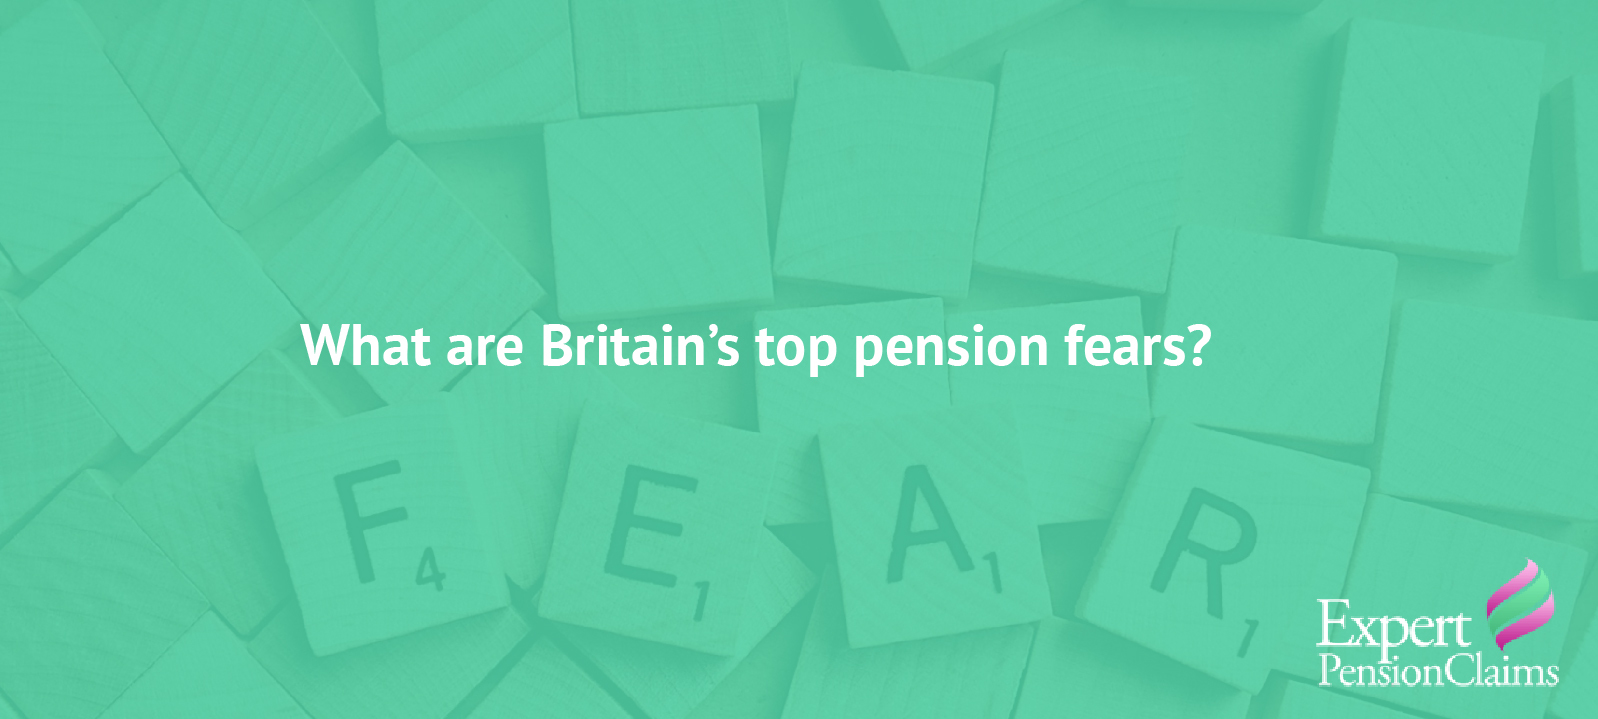 Top UK pension fears